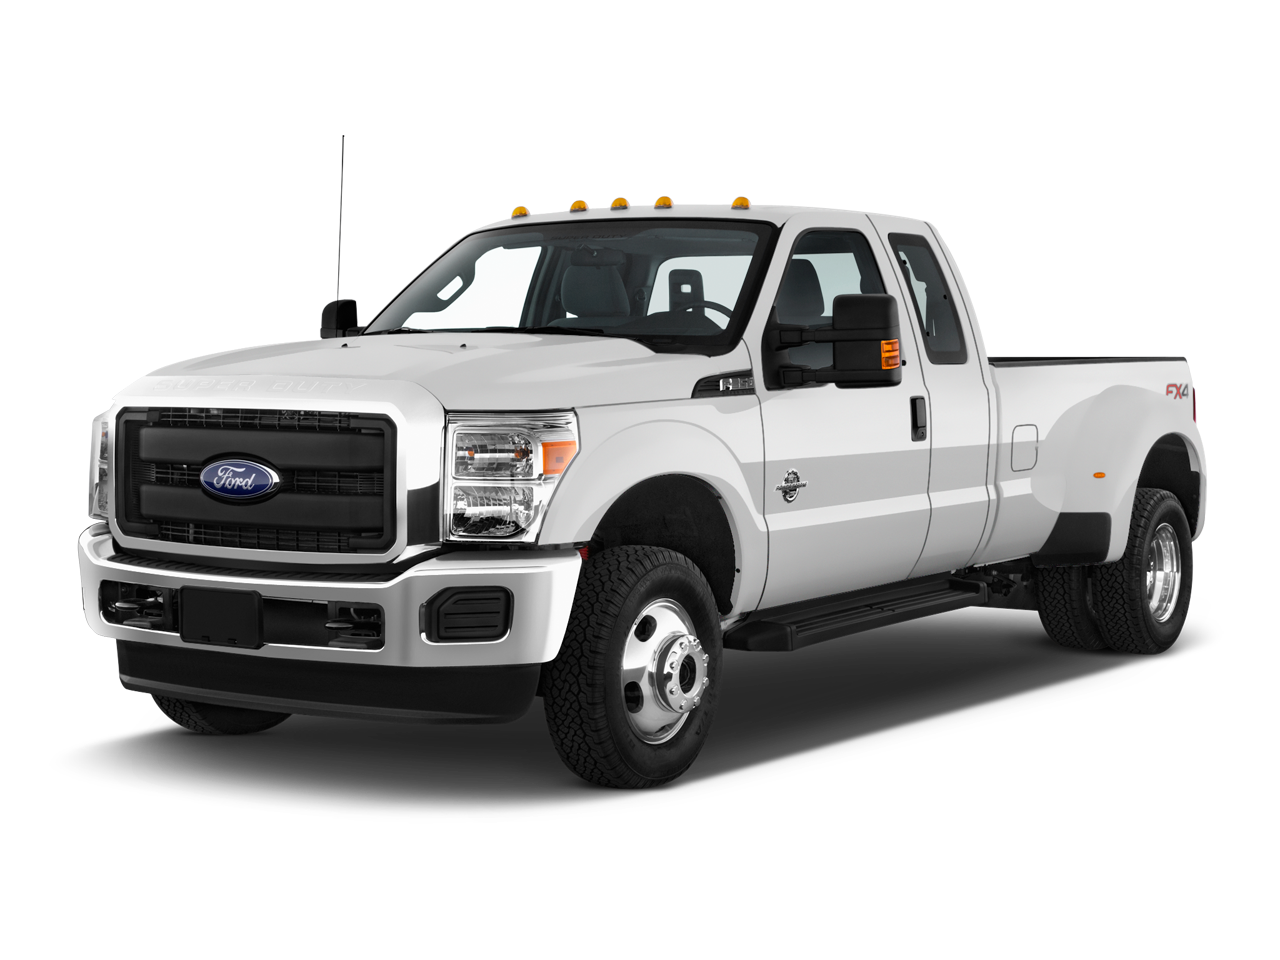 new 2016 ford f 350 super duty 12 ft knapheide body reg cab near old bridge nj all american. Black Bedroom Furniture Sets. Home Design Ideas